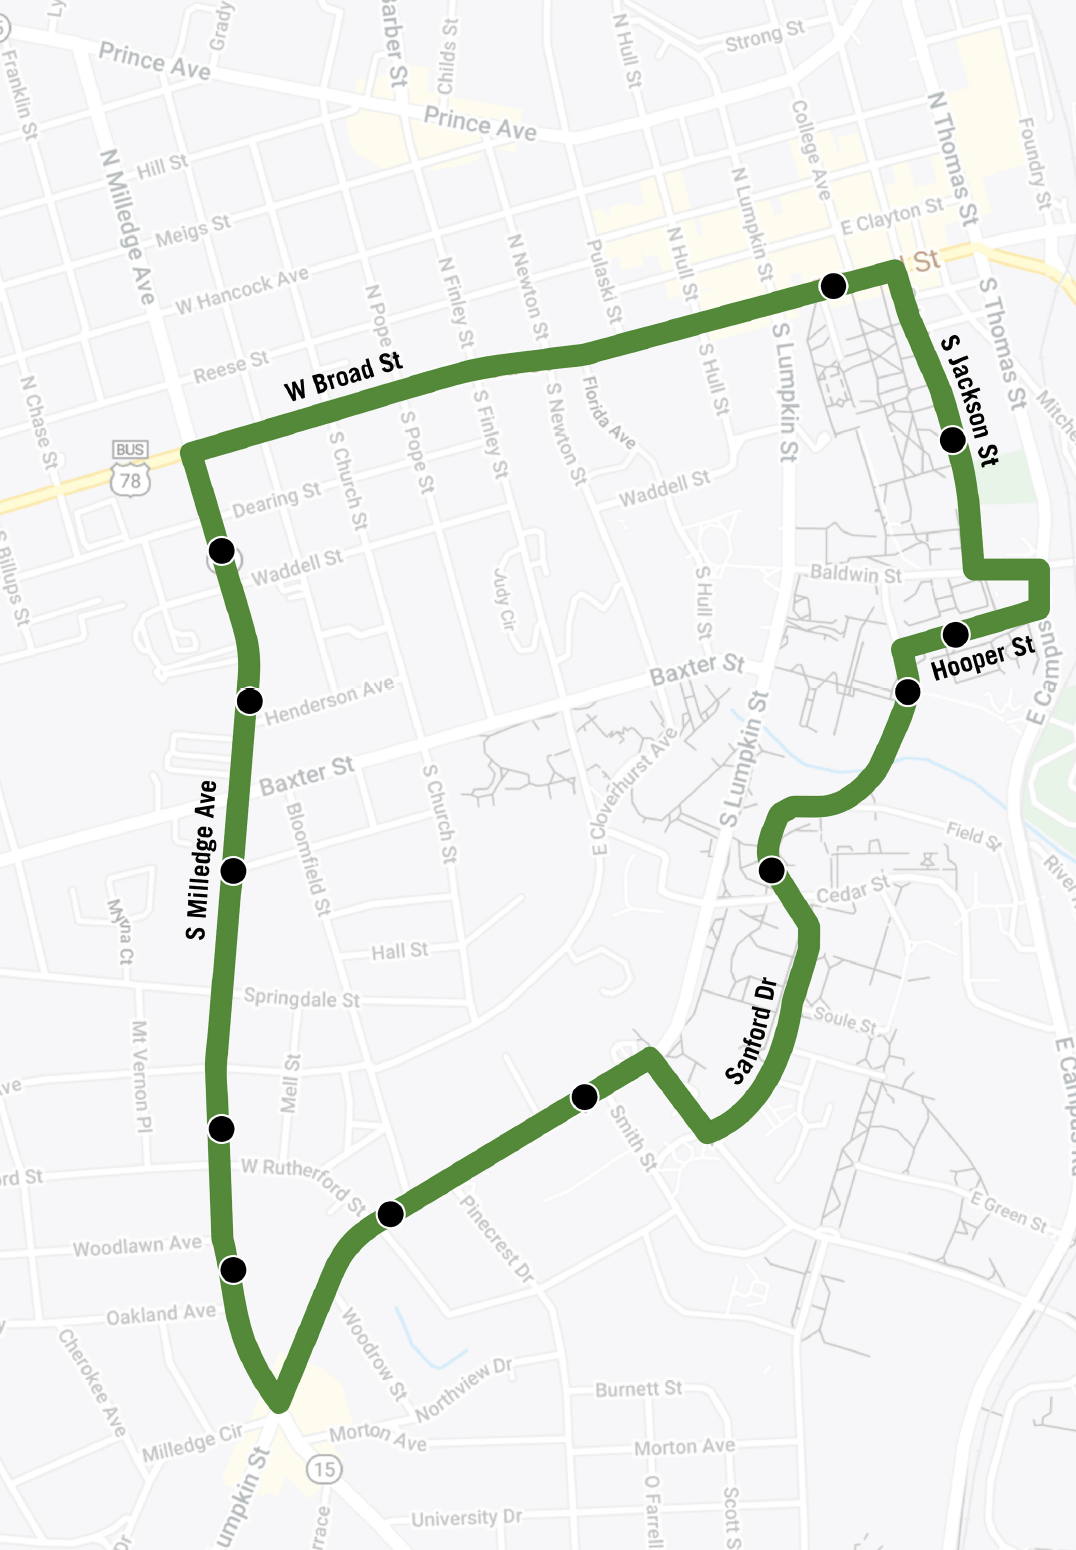 Map of Milledge Avenue route.